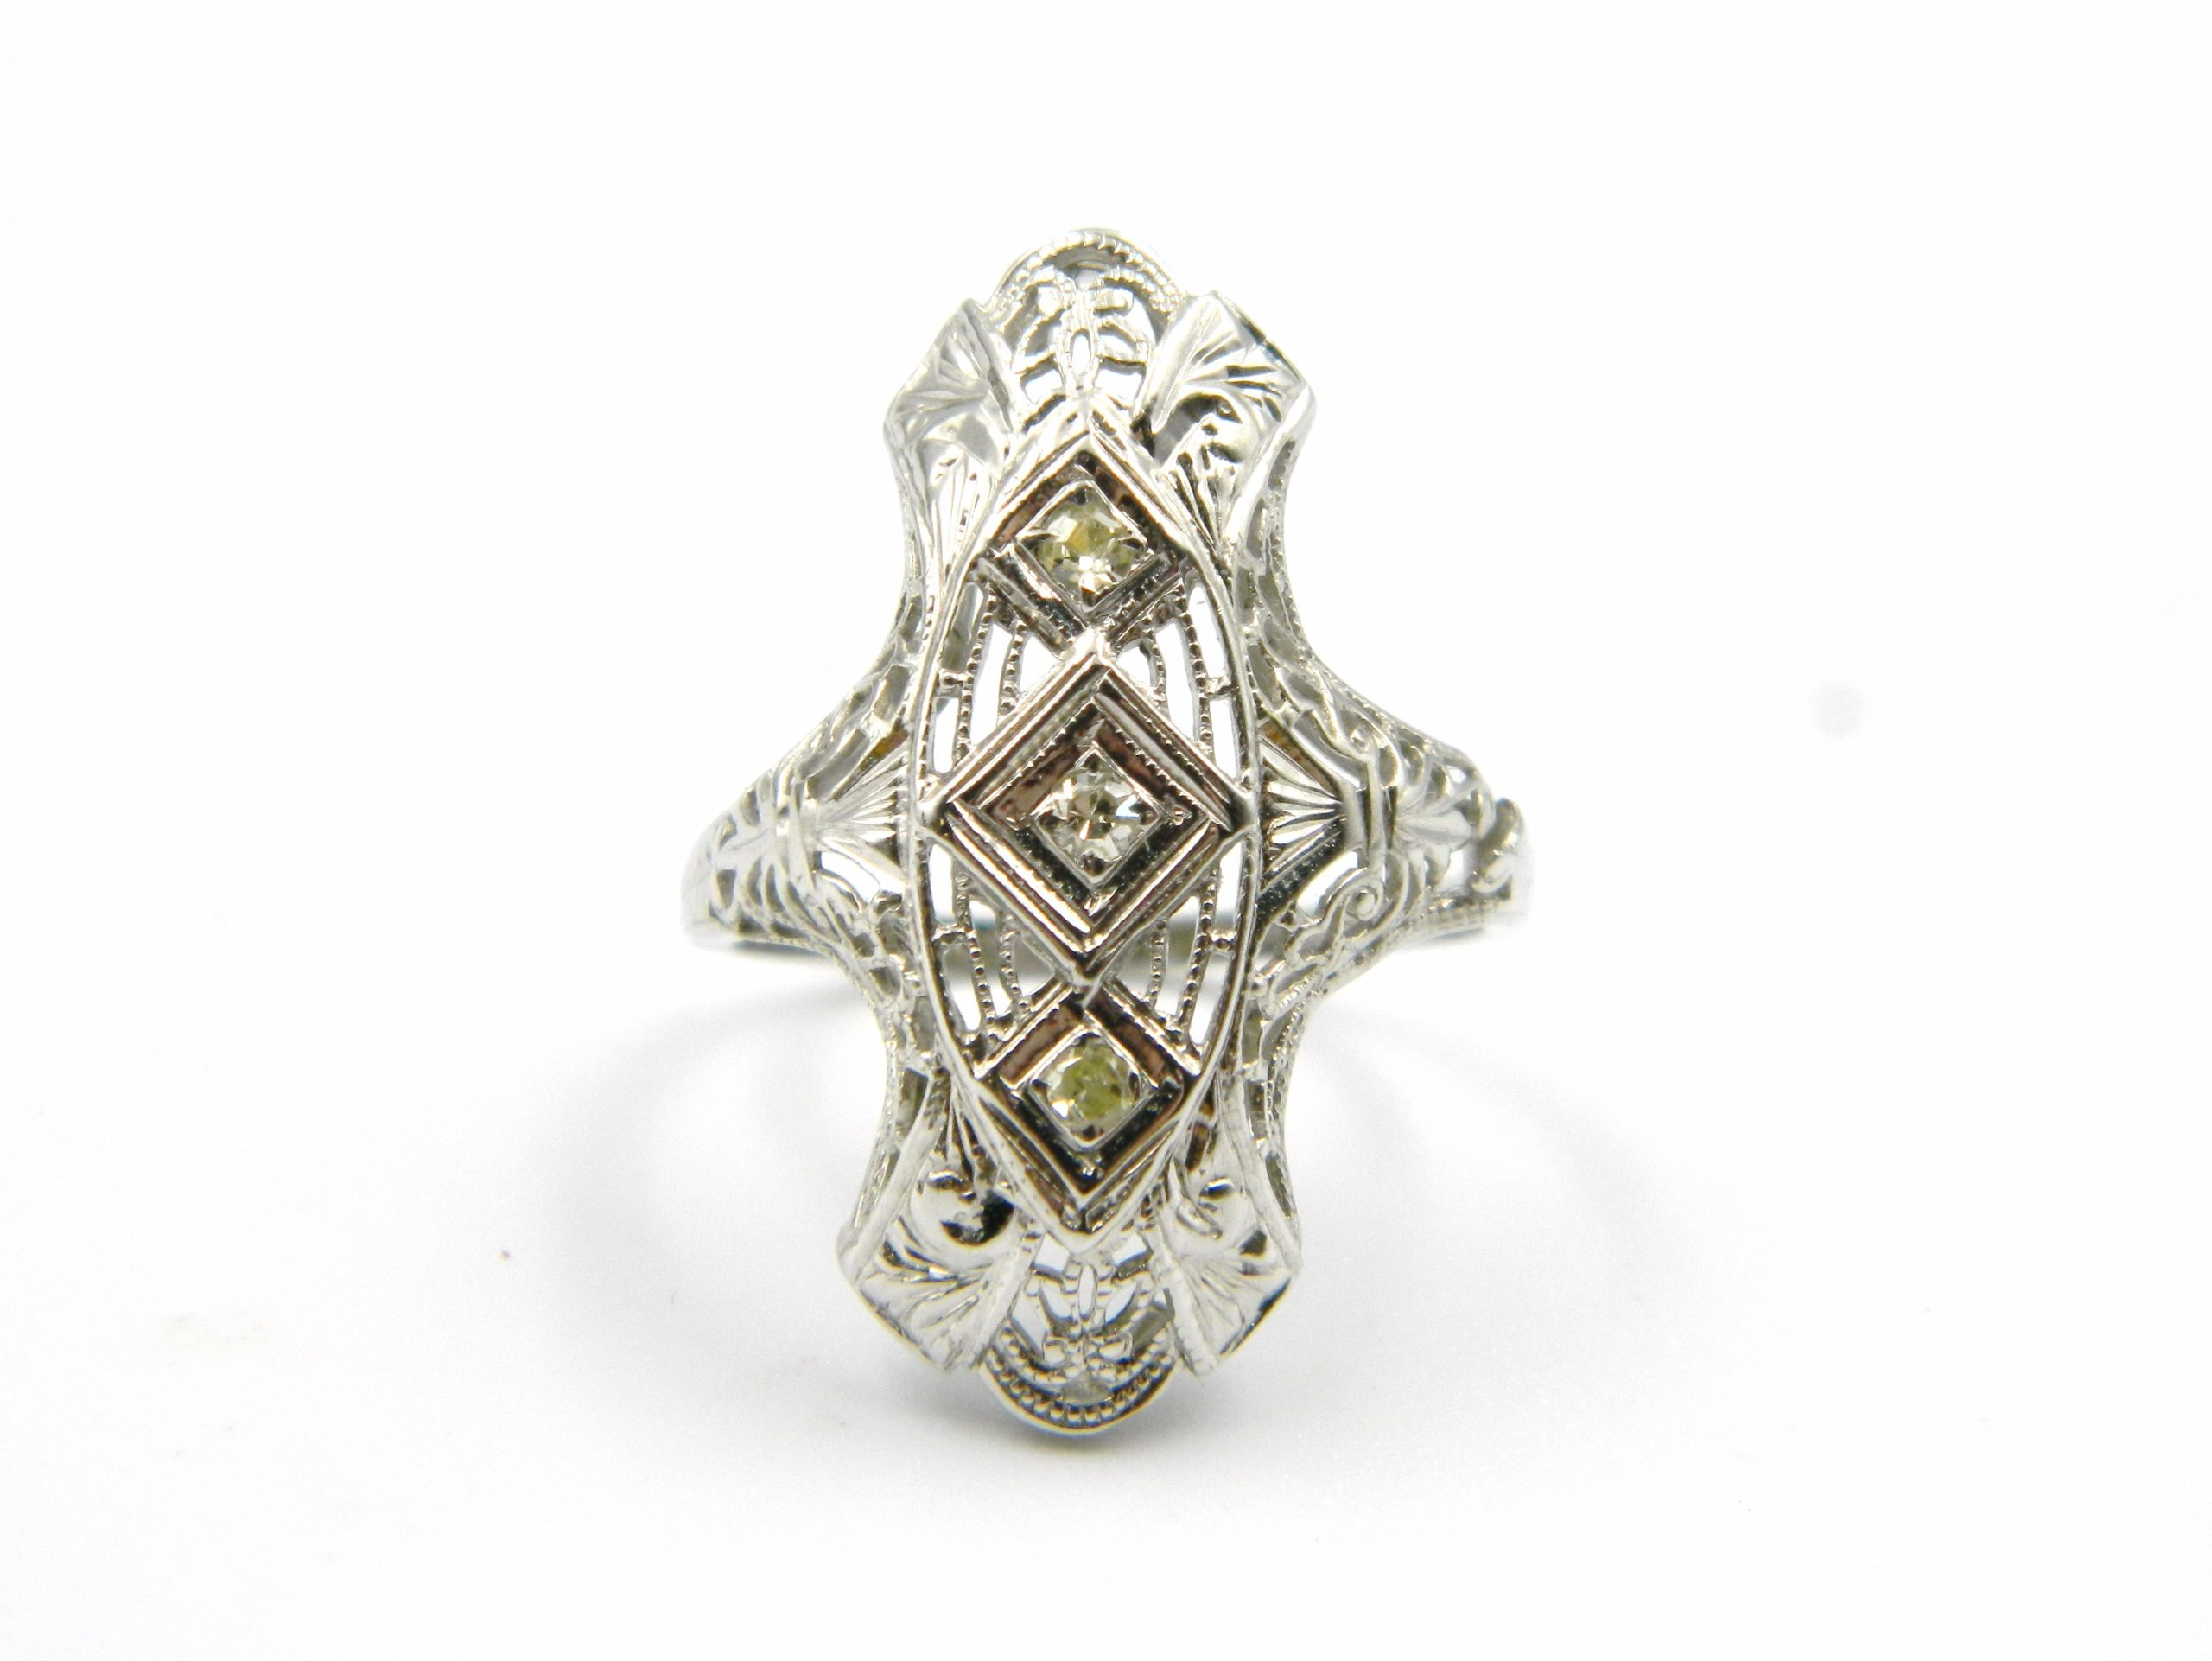 Estate Piece - White Gold Ring with Diamond Accents